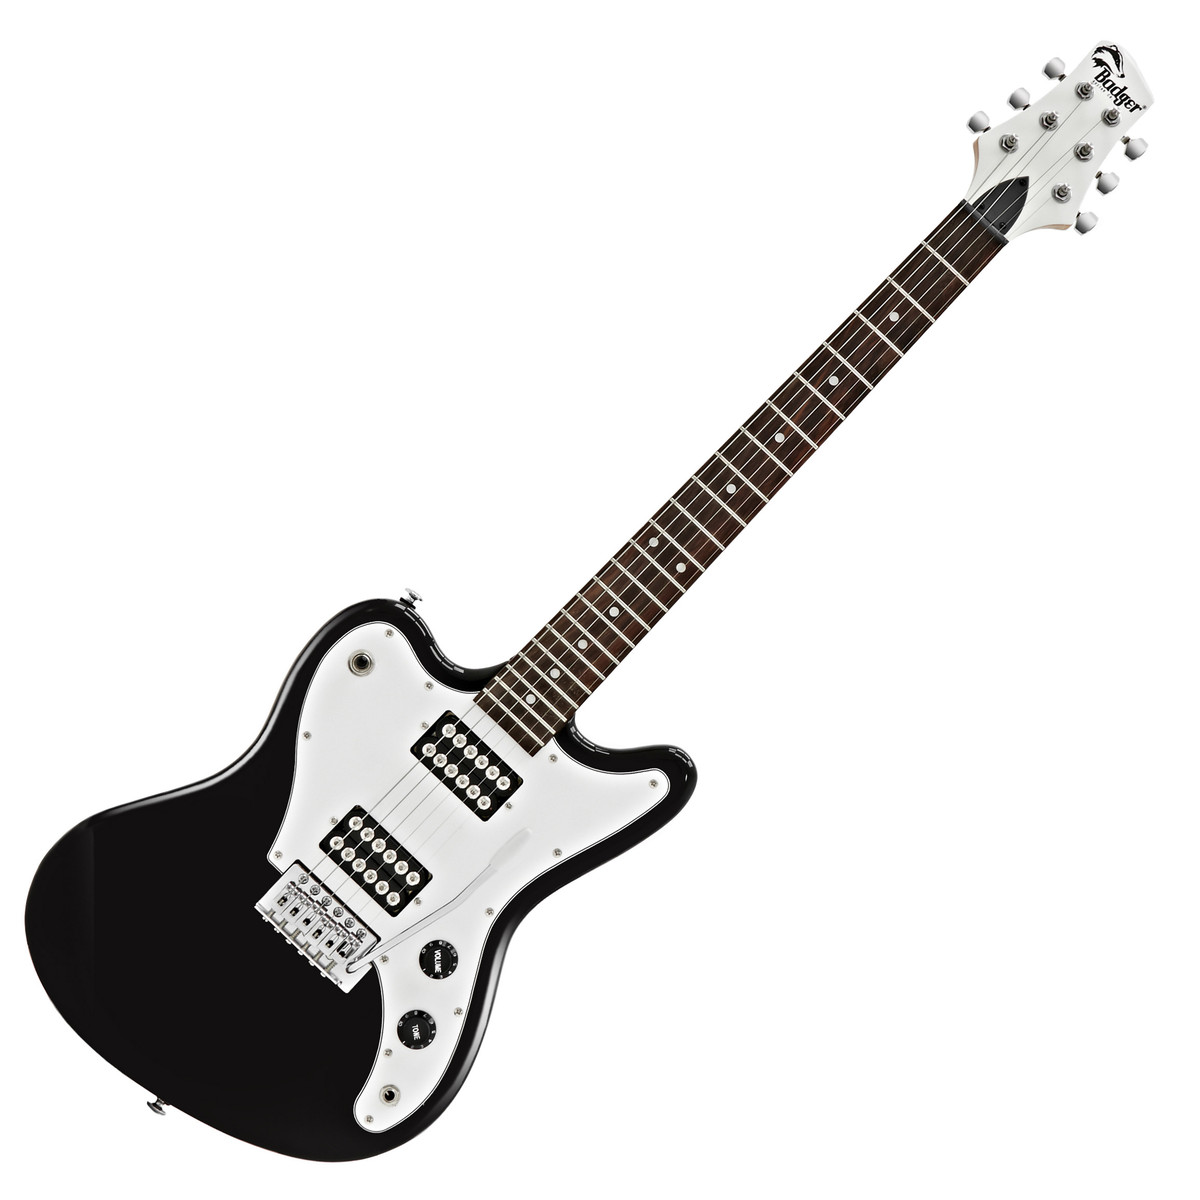 badger electric guitar black at gear4music. Black Bedroom Furniture Sets. Home Design Ideas